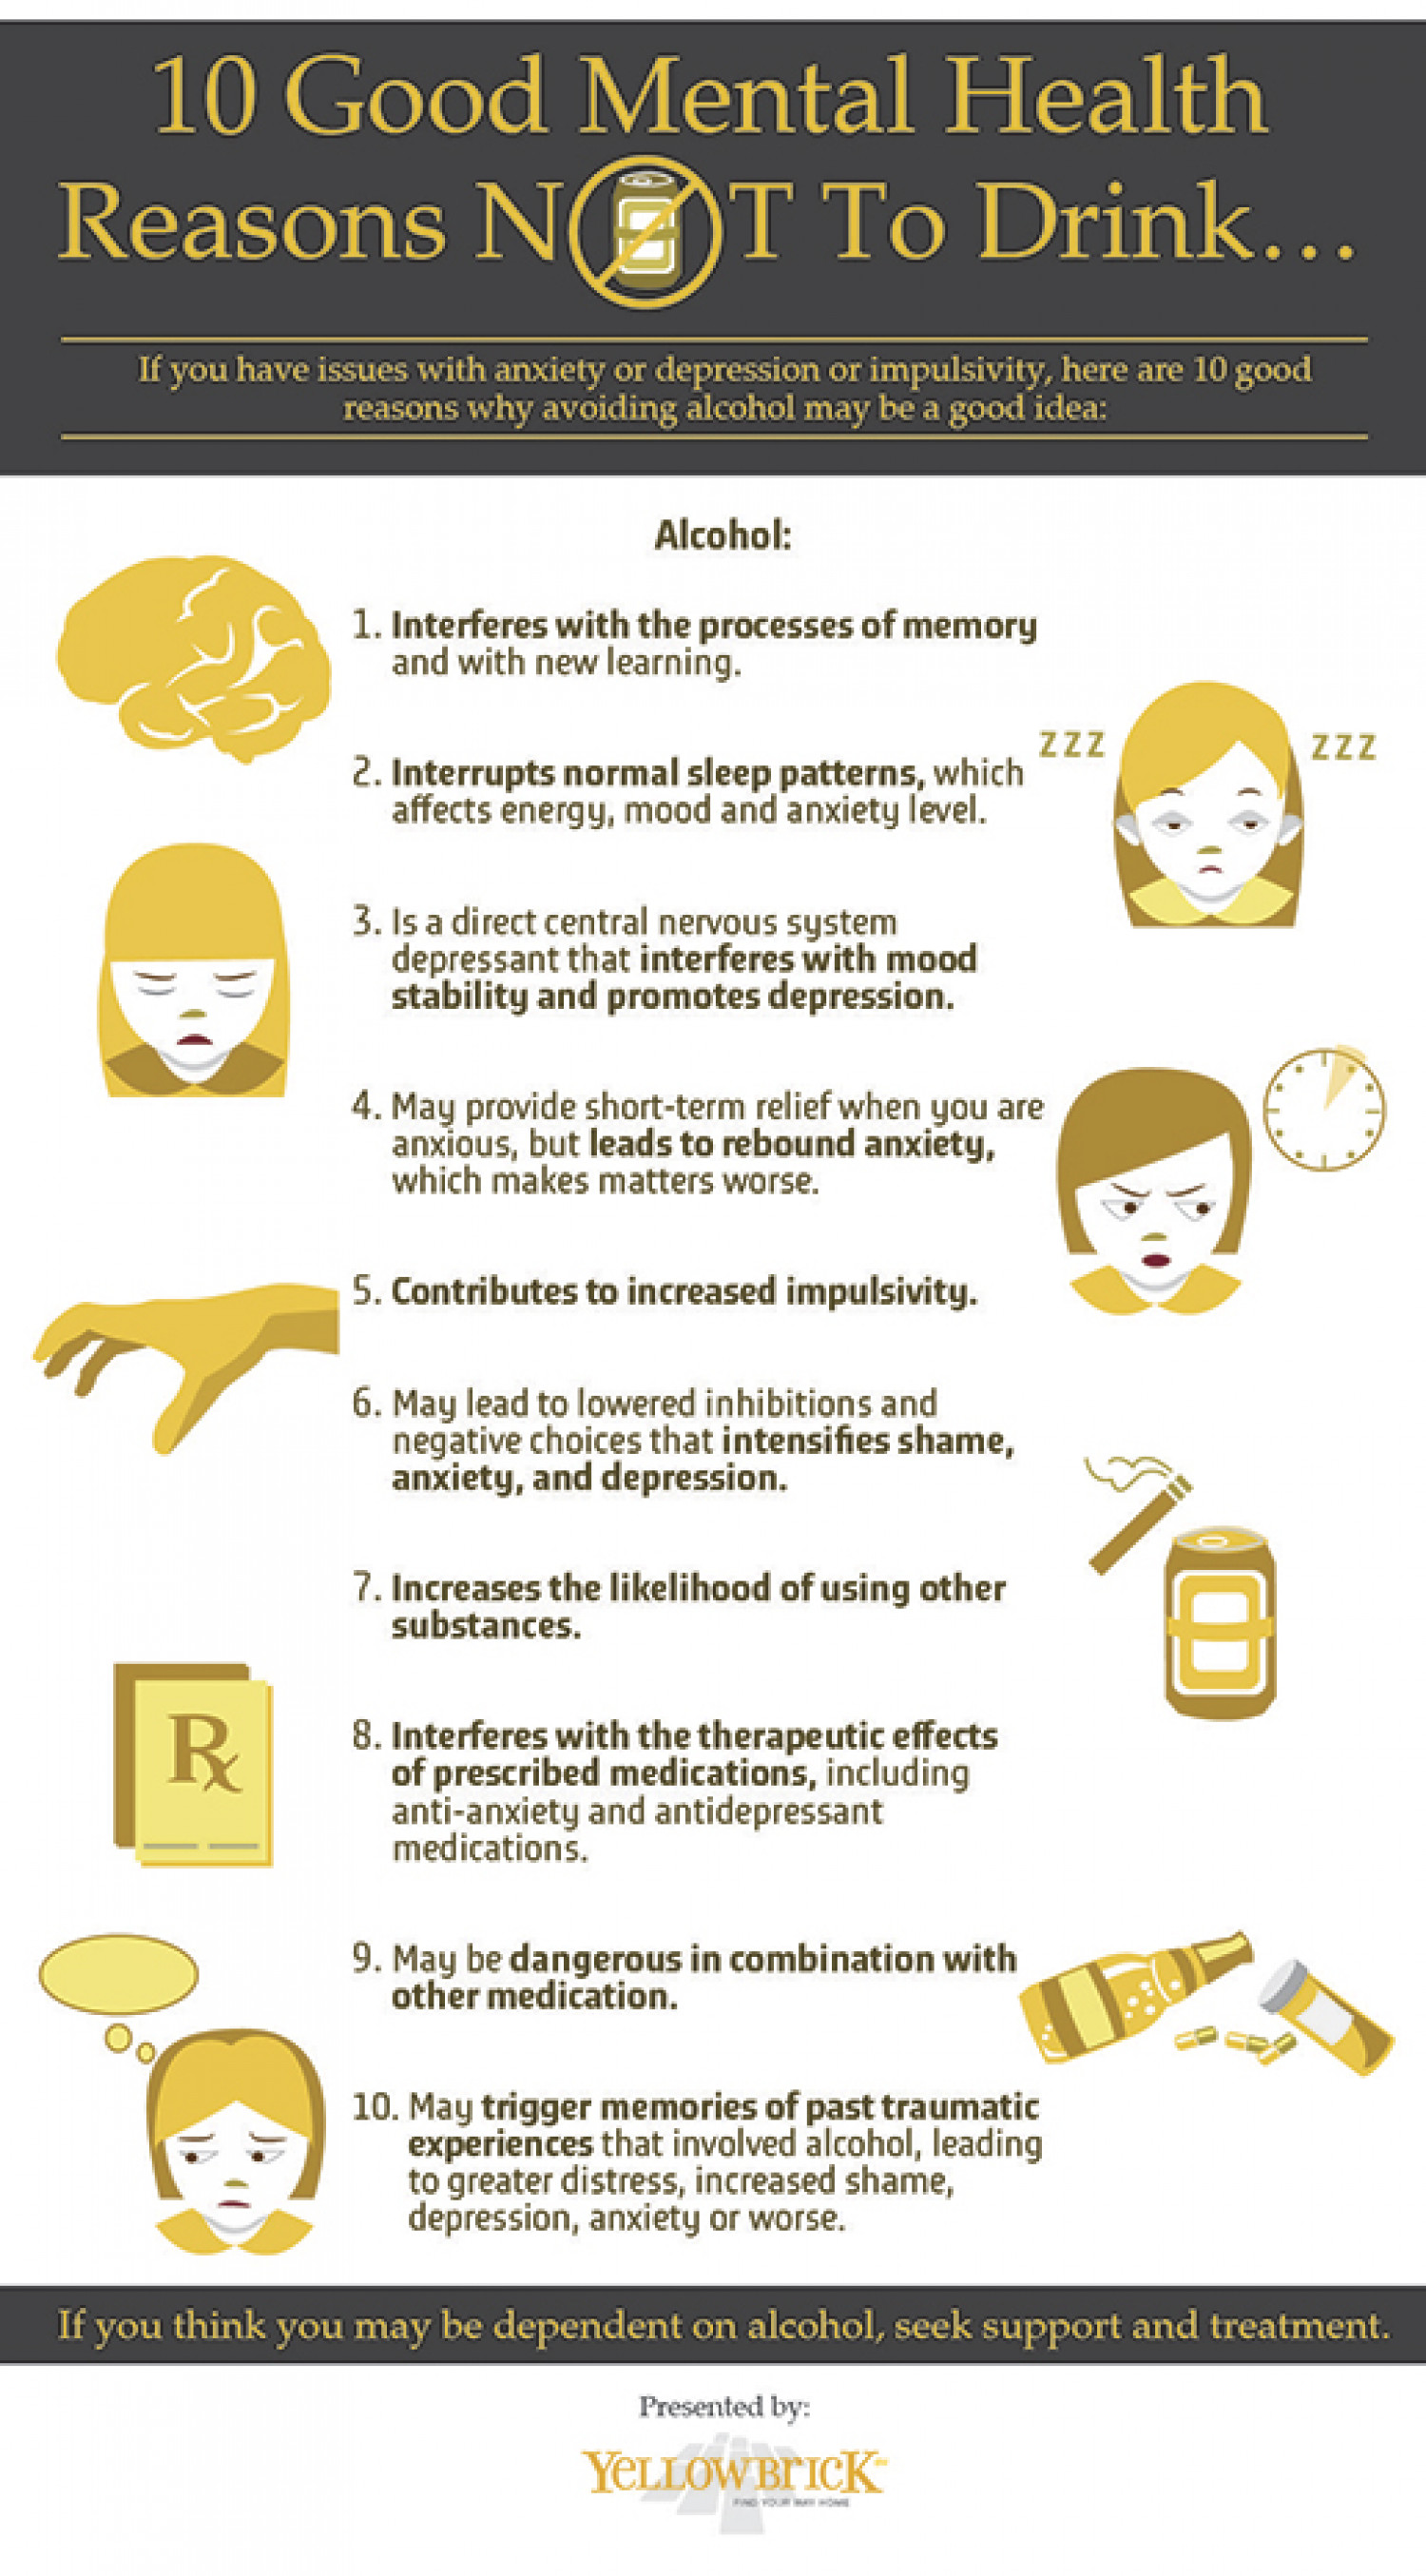 Ten Mental Health Reasons Not To Drink Alcohol